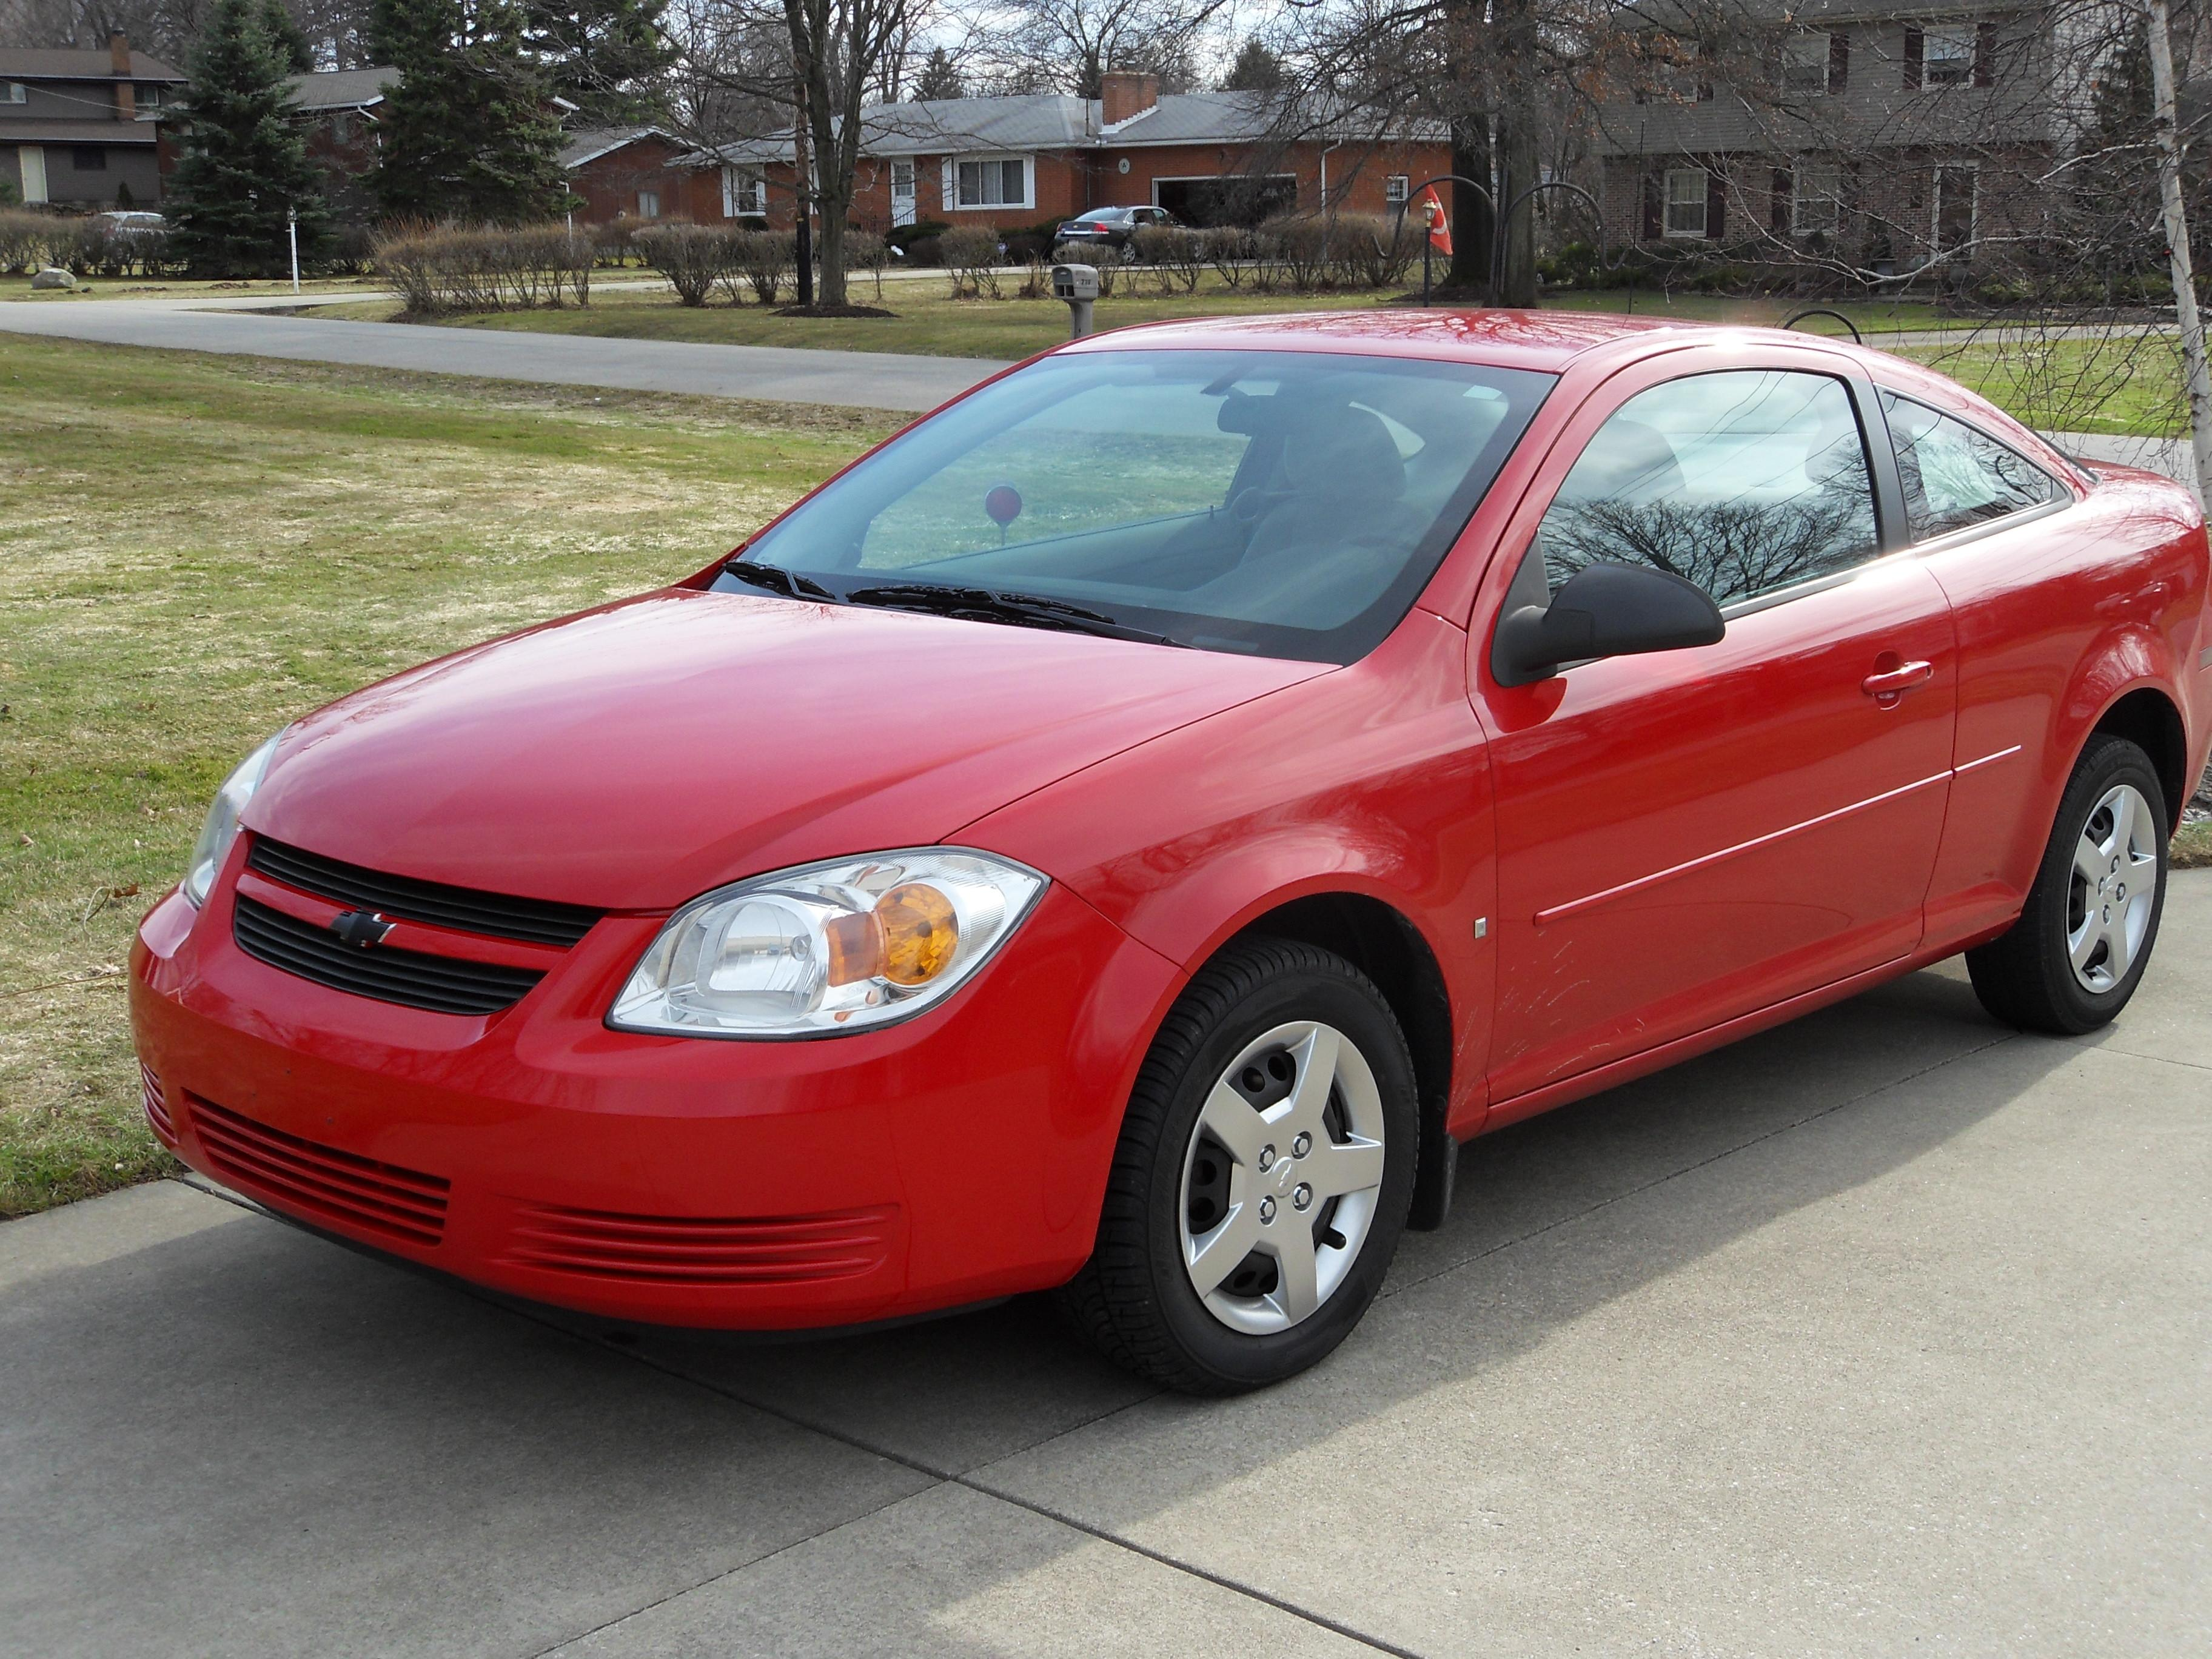 thecoolestthing 2006 Chevrolet Cobalt